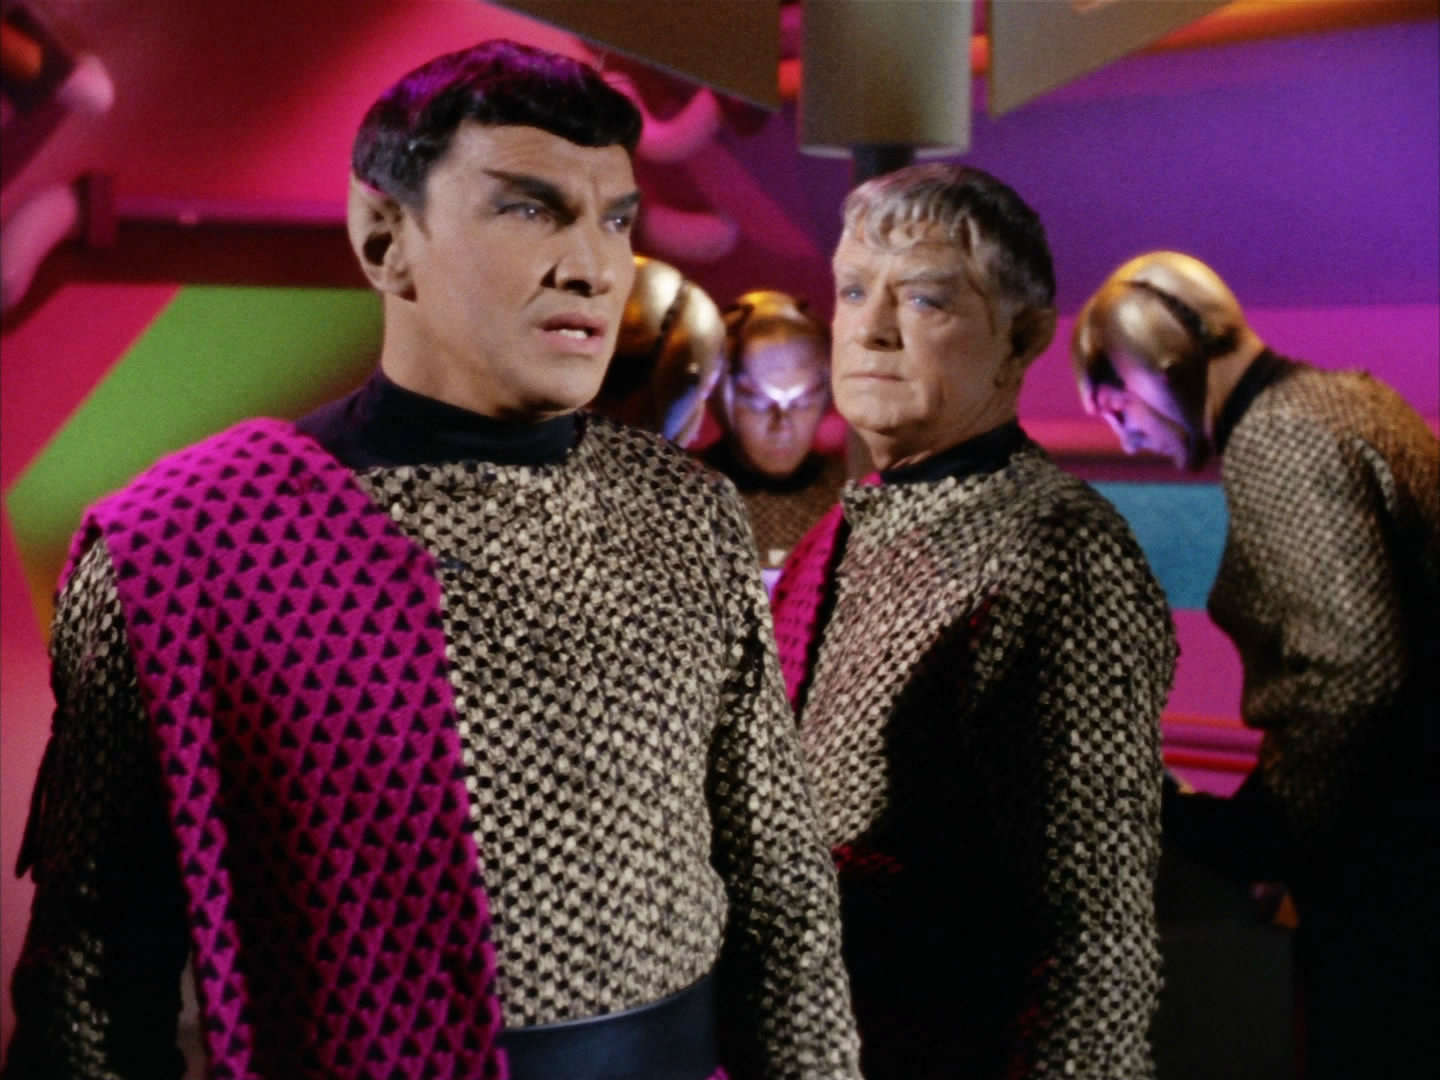 Romulan_commander_and_Centurian.jpg